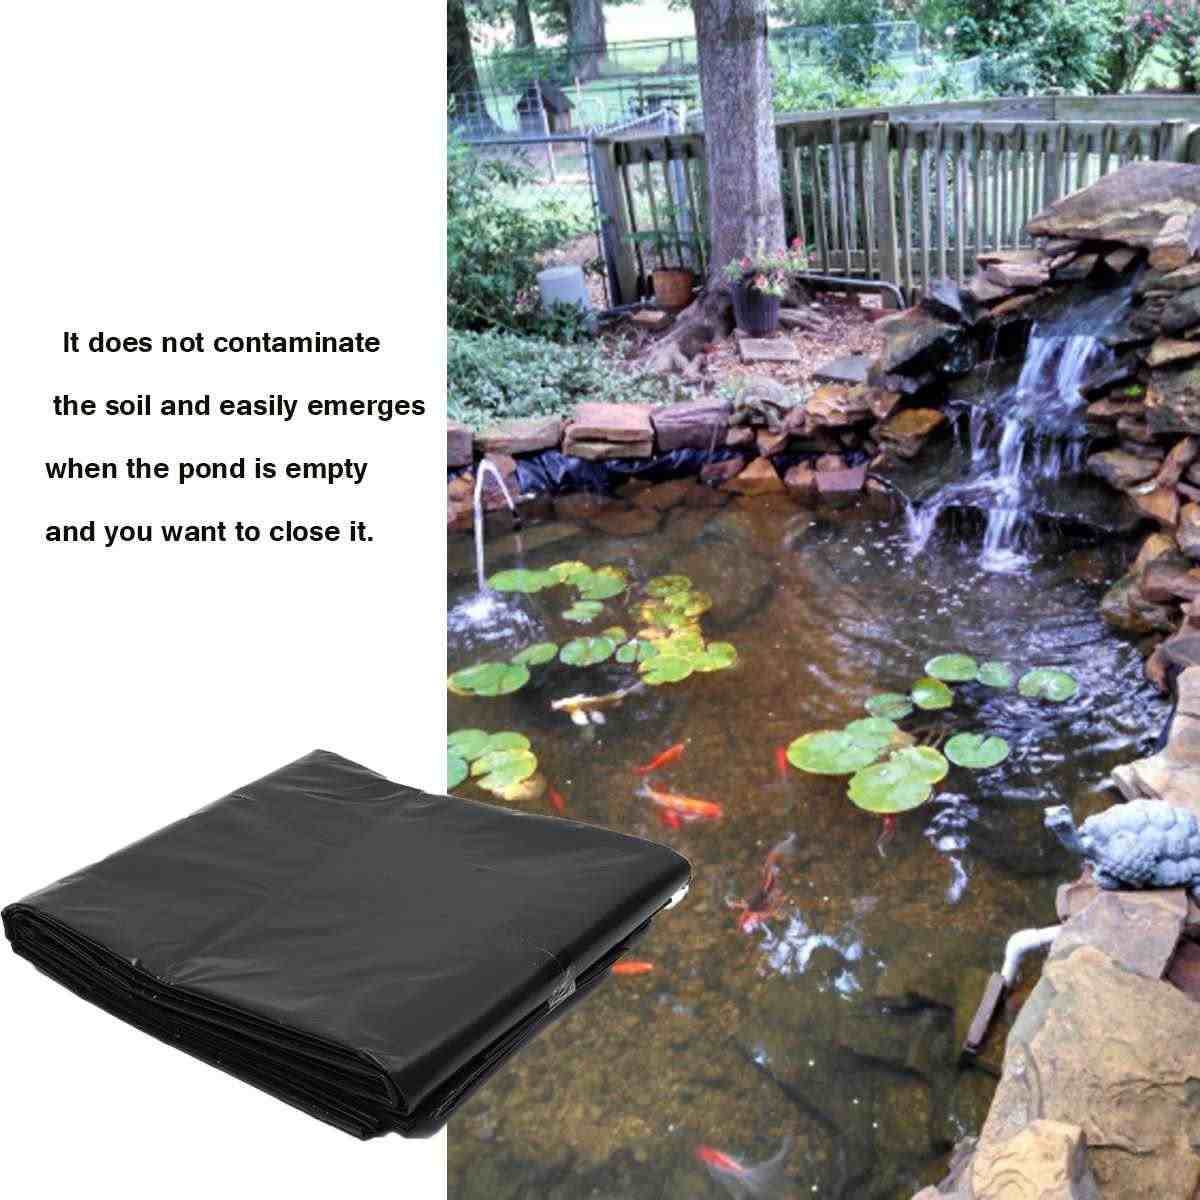 New 3 Size Fish Pond Liner Garden Pools Reinforced Hdpe Heavy Duty Professional Landscaping Pool Waterproof Liner Cloth Black 0 Pond Liners Aliexpress